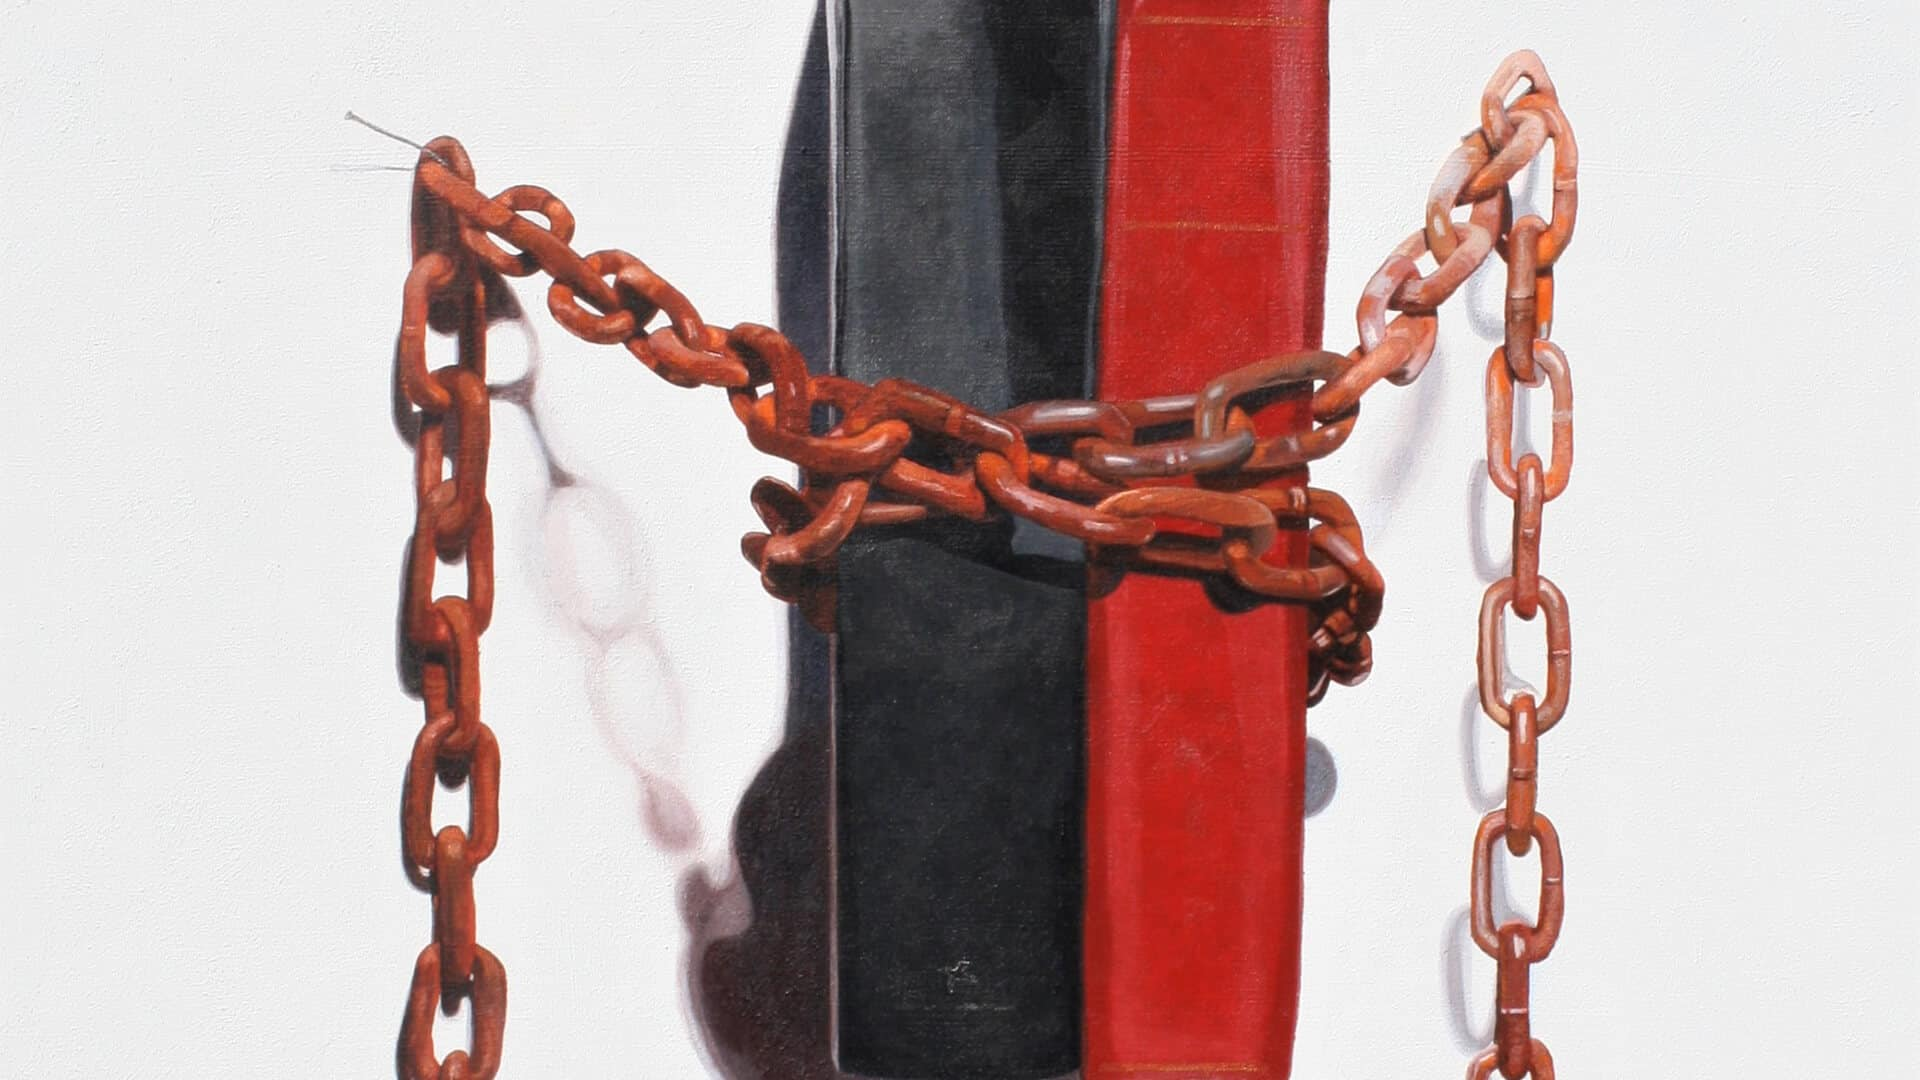 The Same Chains. 91 x 76 cm. Acrylic on canvas 2020. Artist: David Garneau.